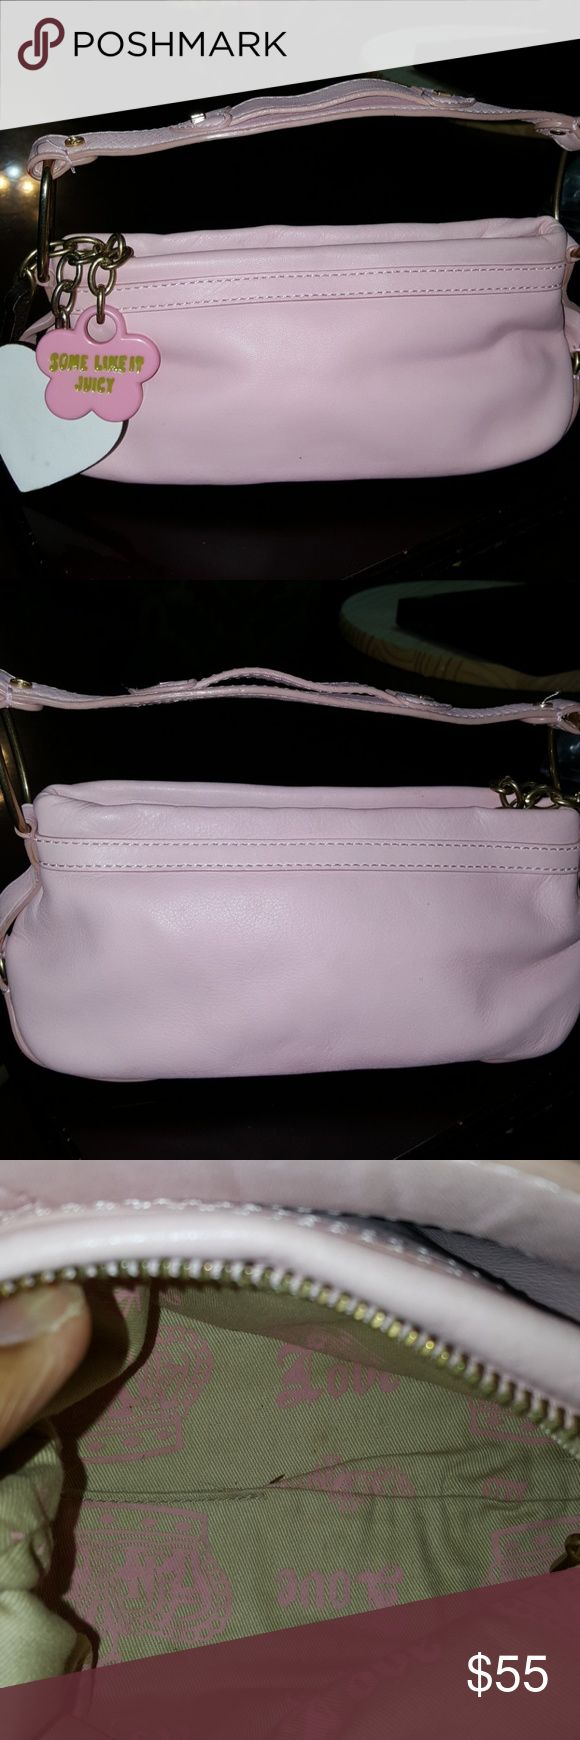 Juicy couture purse Pink Juicy leather purse.   Very cute! Juicy Couture Bags Mini Bags